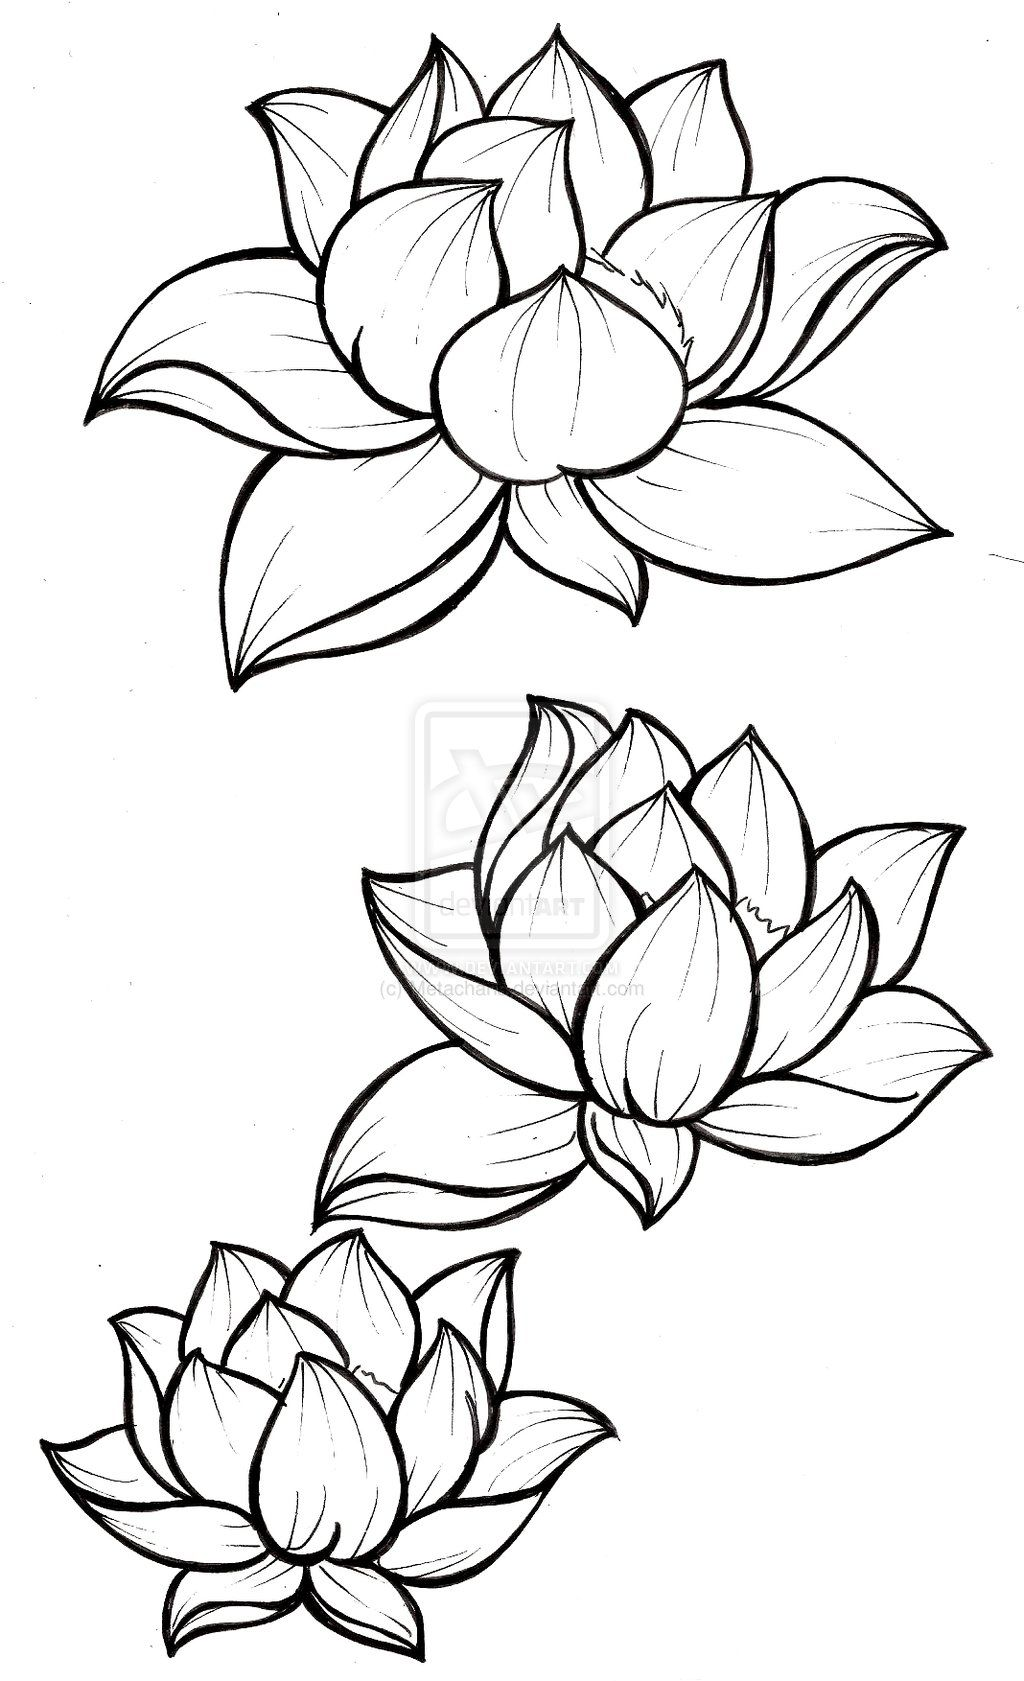 Lotus blossom tattoo by metacharisiantart on deviantart lotus blossom tattoo by metacharisiantart on deviantart izmirmasajfo